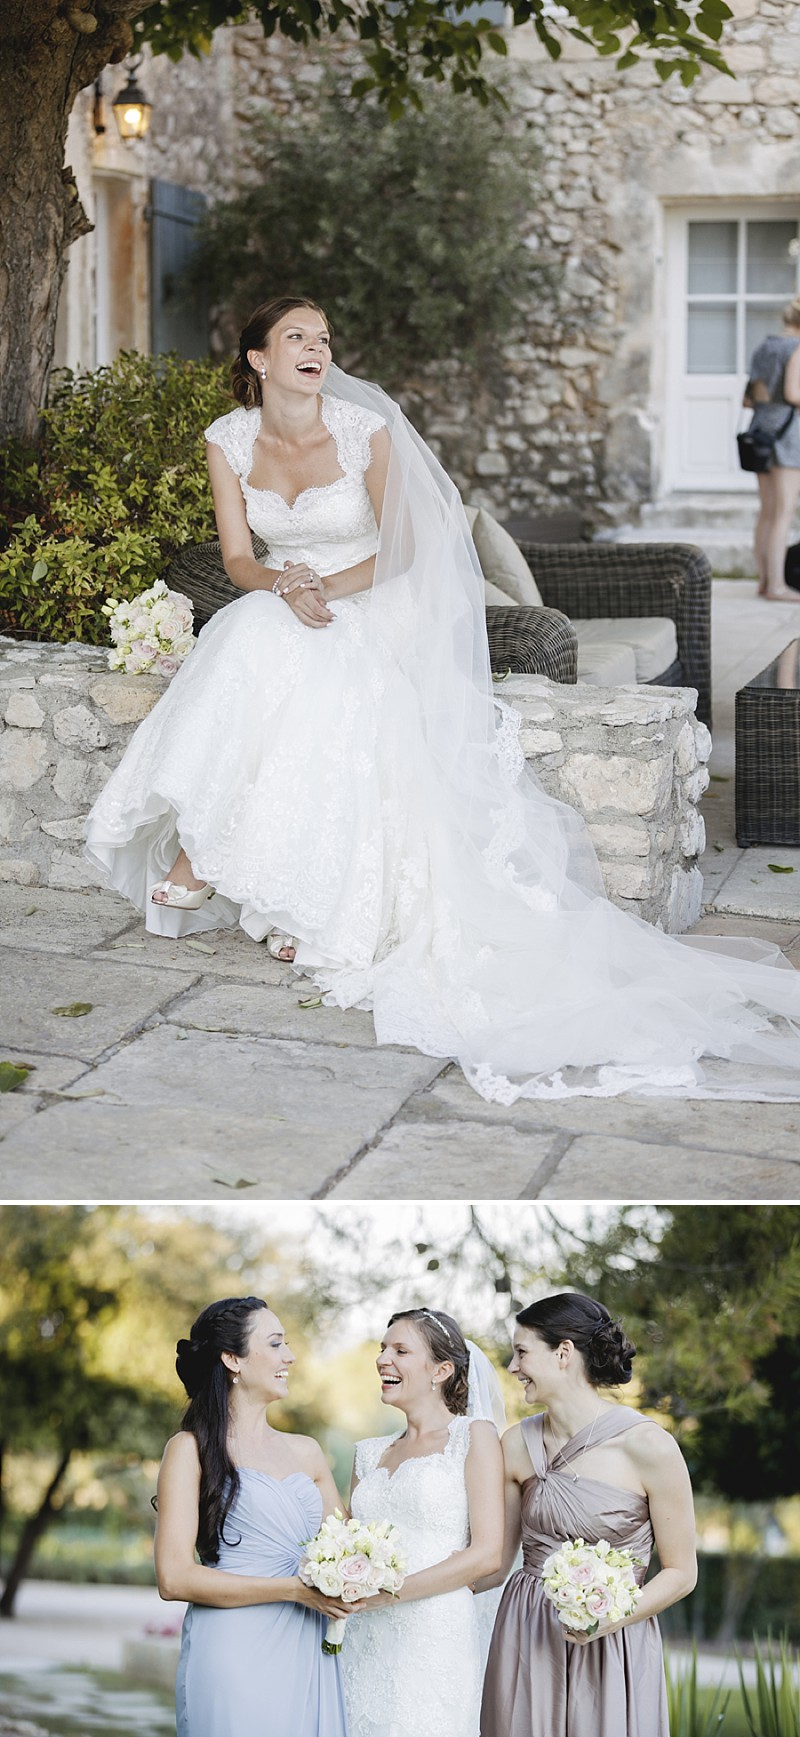 Elegant Wedding At Le Mas De La Rose Provence With Bride In Lace Fishtail Gown By Pronovias And Groom In Navy Armani Tuxedo With Images From Jo Hastings Wedding Photography_0010